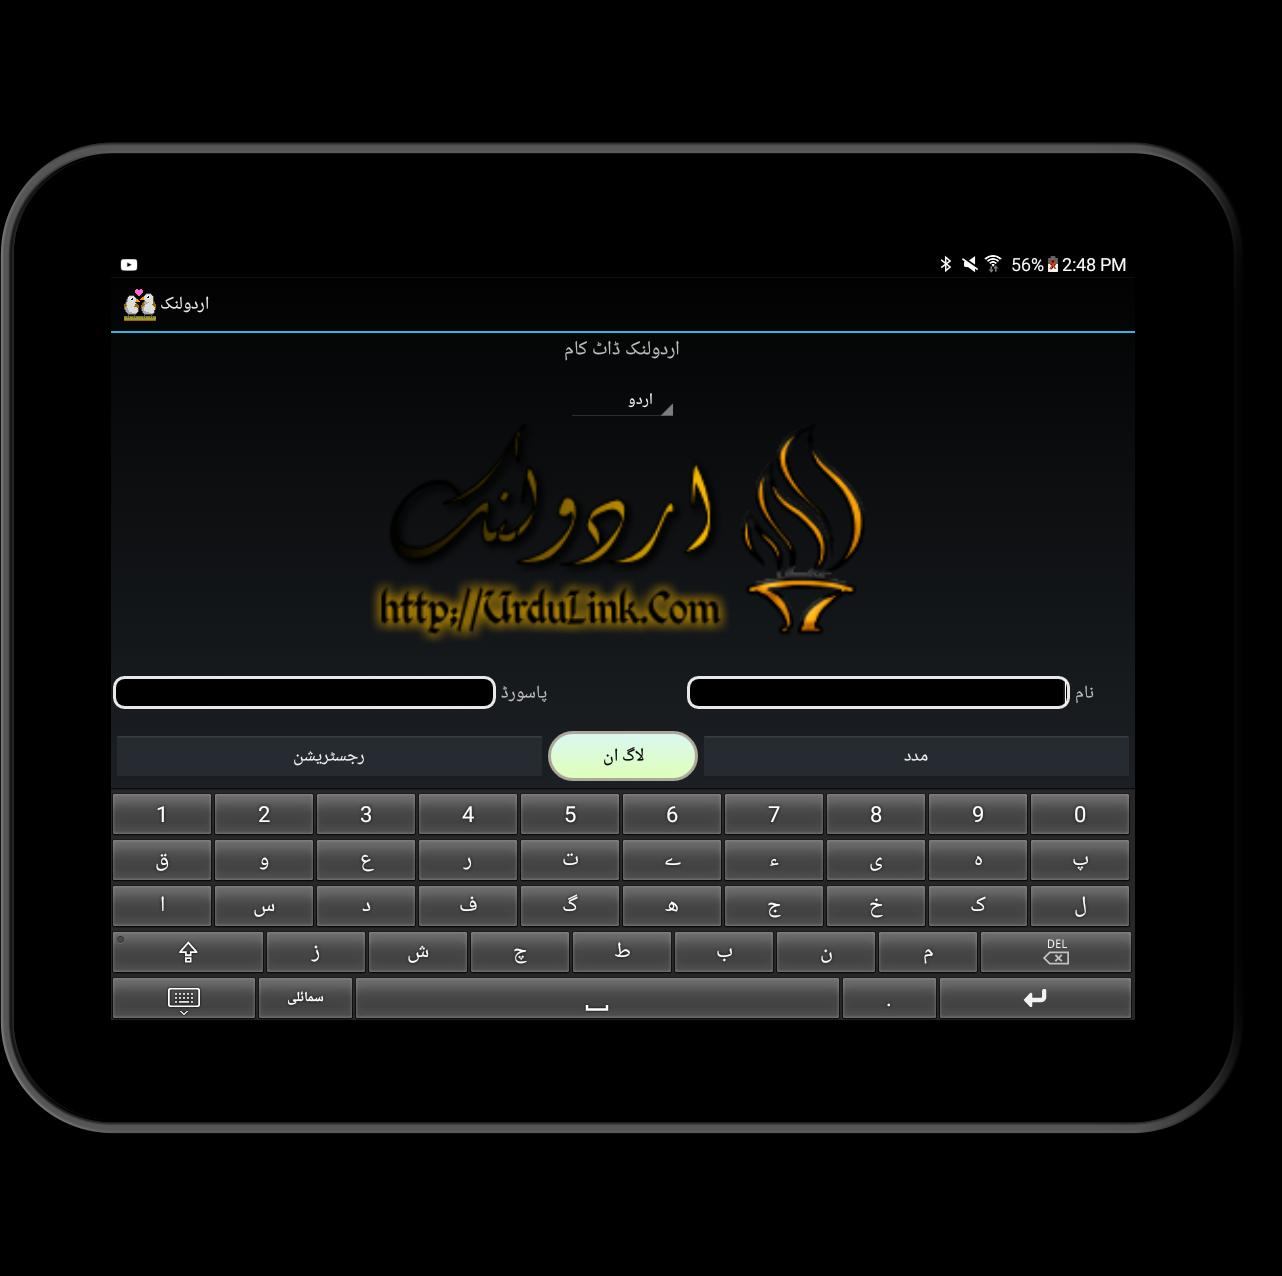 UrduLink Urdu Chat Library for Android - APK Download